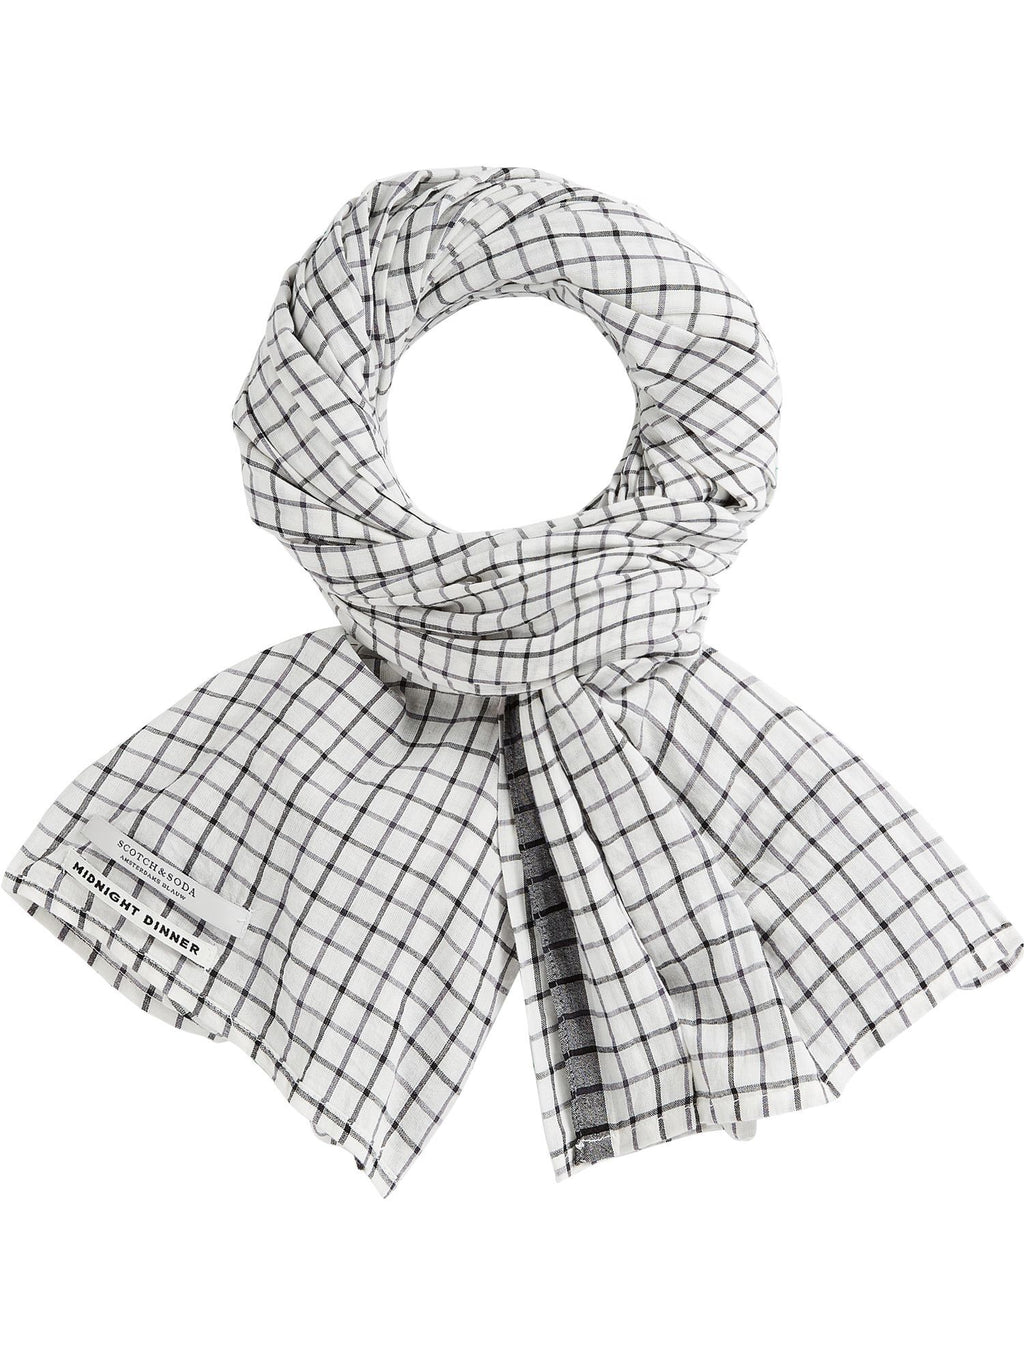 SCOTCH AND SODA - Checked Cotton Scarf online at PAYA boutique